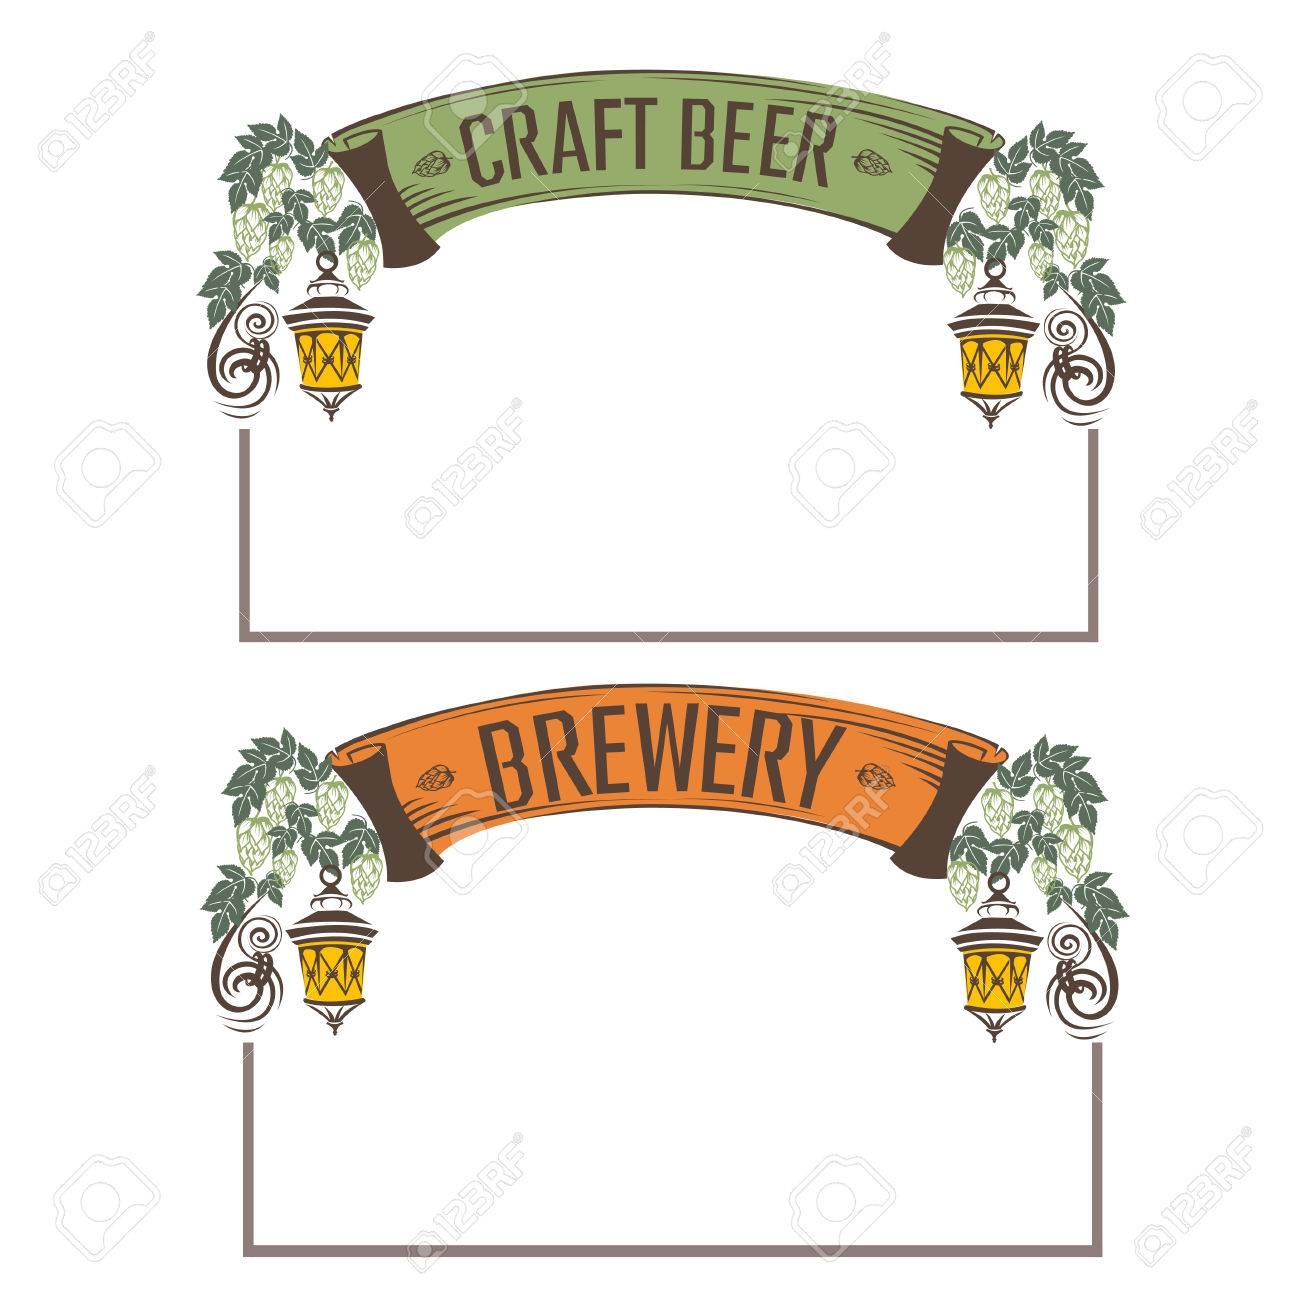 Vintage Beer Frame Royalty Free Cliparts, Vectors, And Stock ...